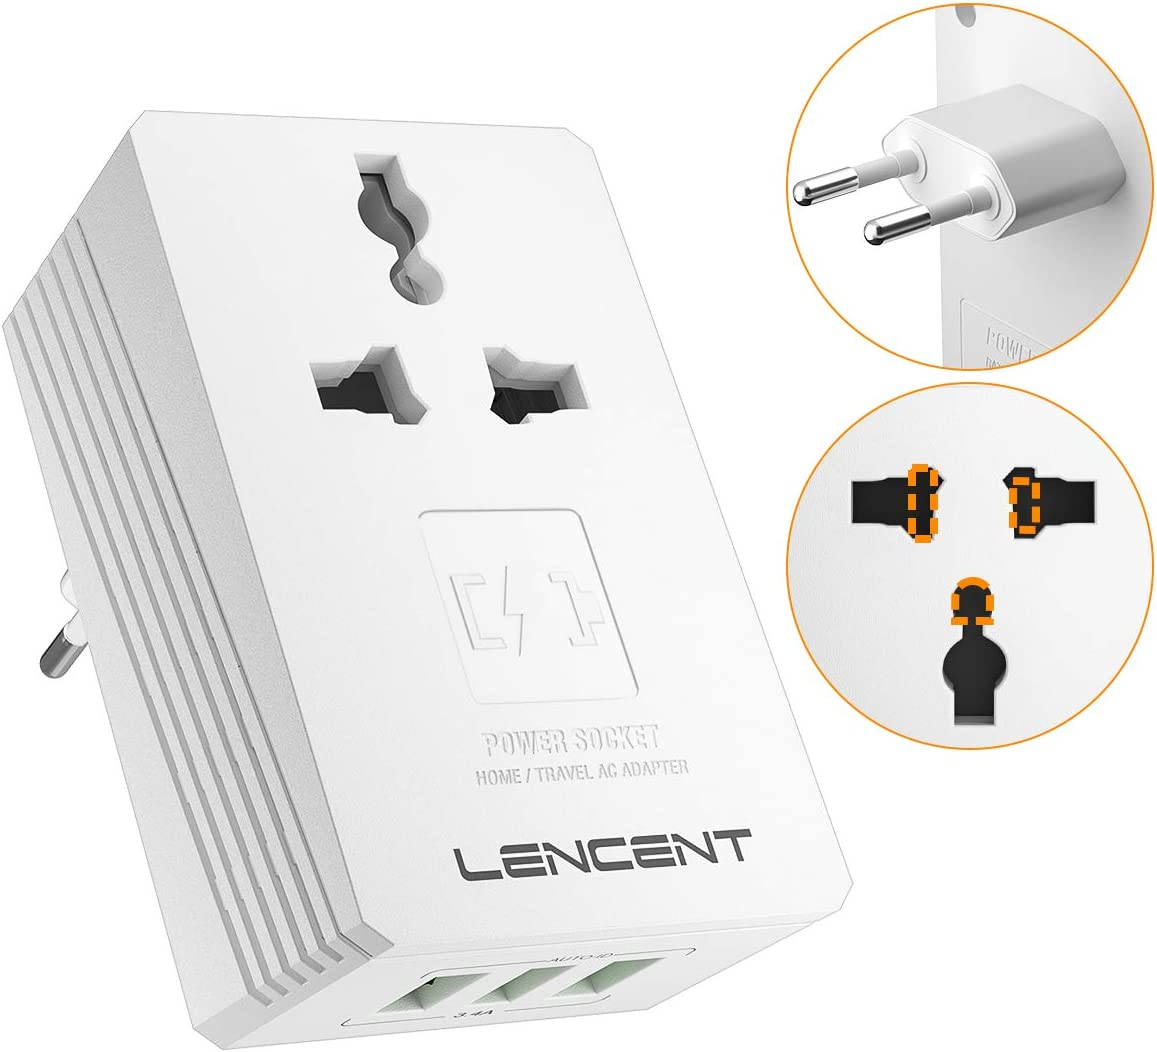 All In One Travel Adapter, LENCENT International Wall Charger with 3 USB Charging Ports,Worldwide AC Power Plug Adapter Type-C for USA EU UK AUS Cell Phone Laptop with 3.4A Smart Power